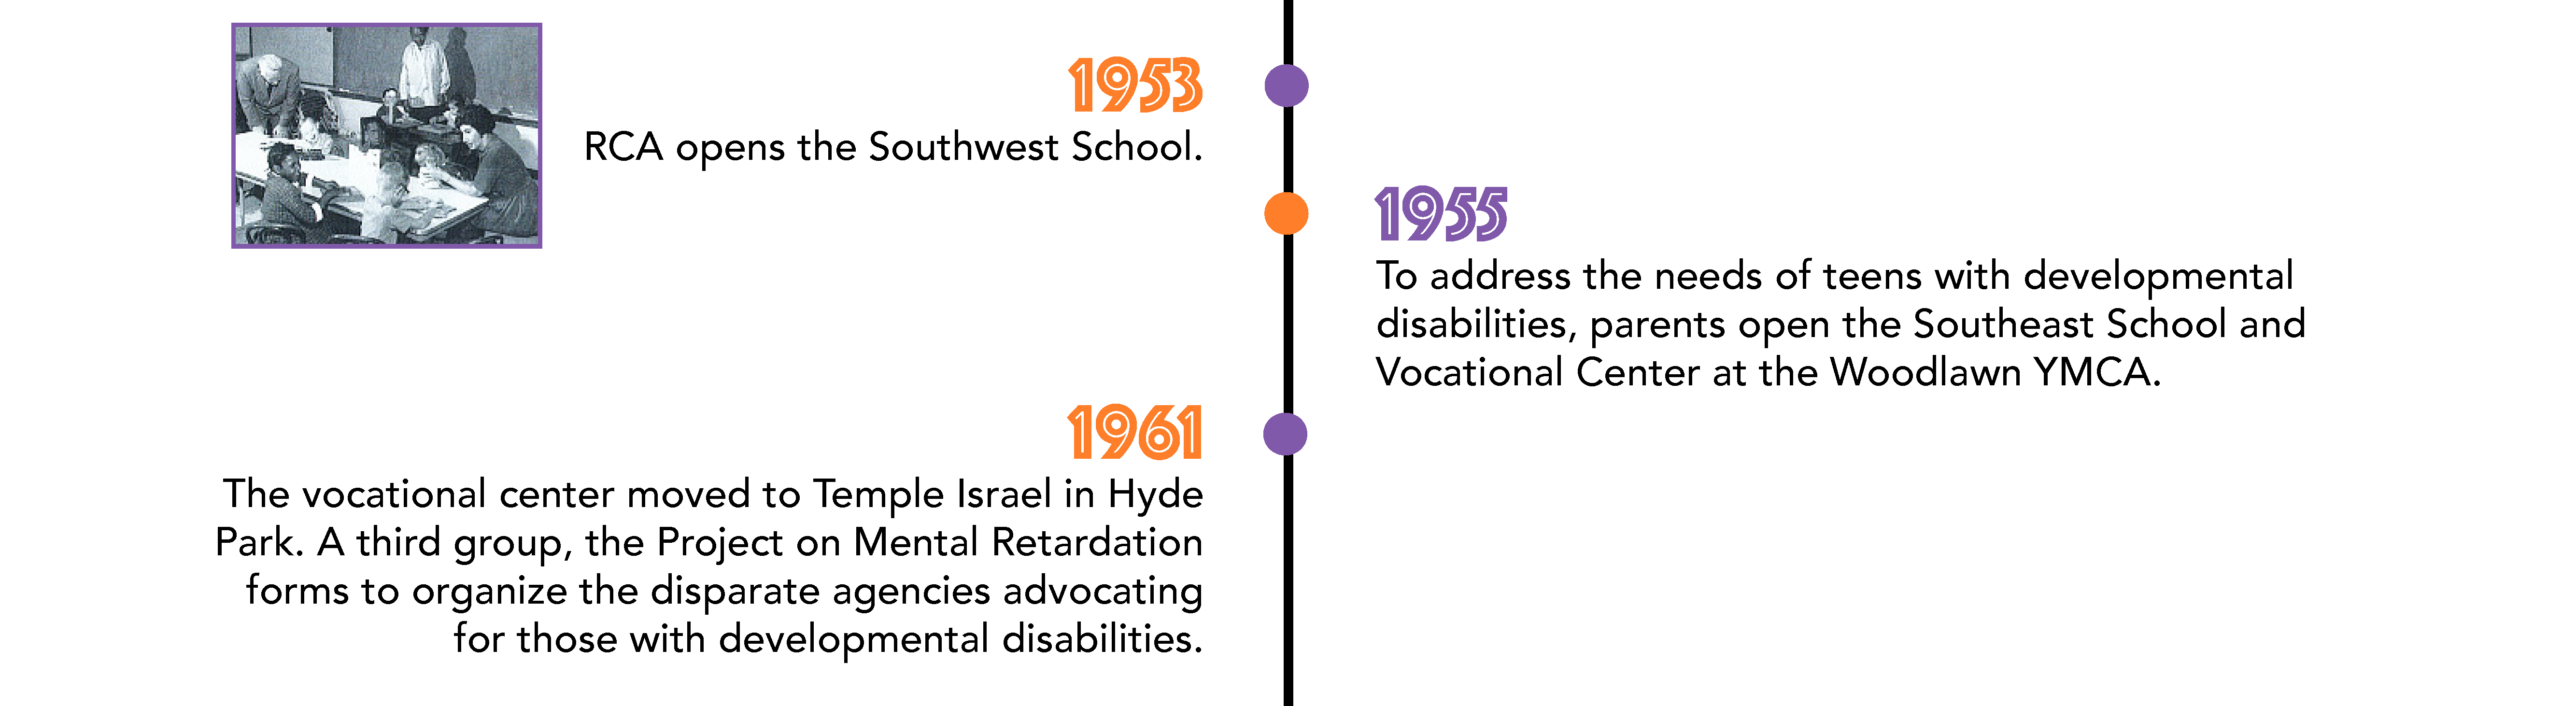 RCA opens the Southwest School in 1953. To address the needs of teens with developmental disabilities, parents open the Southeast School and Vocational Center at the Woodlawn YMCA in 1955. In 1961, The vocational center moved to Temple Israel in Hyde Park. A third group, the Project on Mental Retardation forms to organize the disparate agencies advocating for those with developmental disabilities.